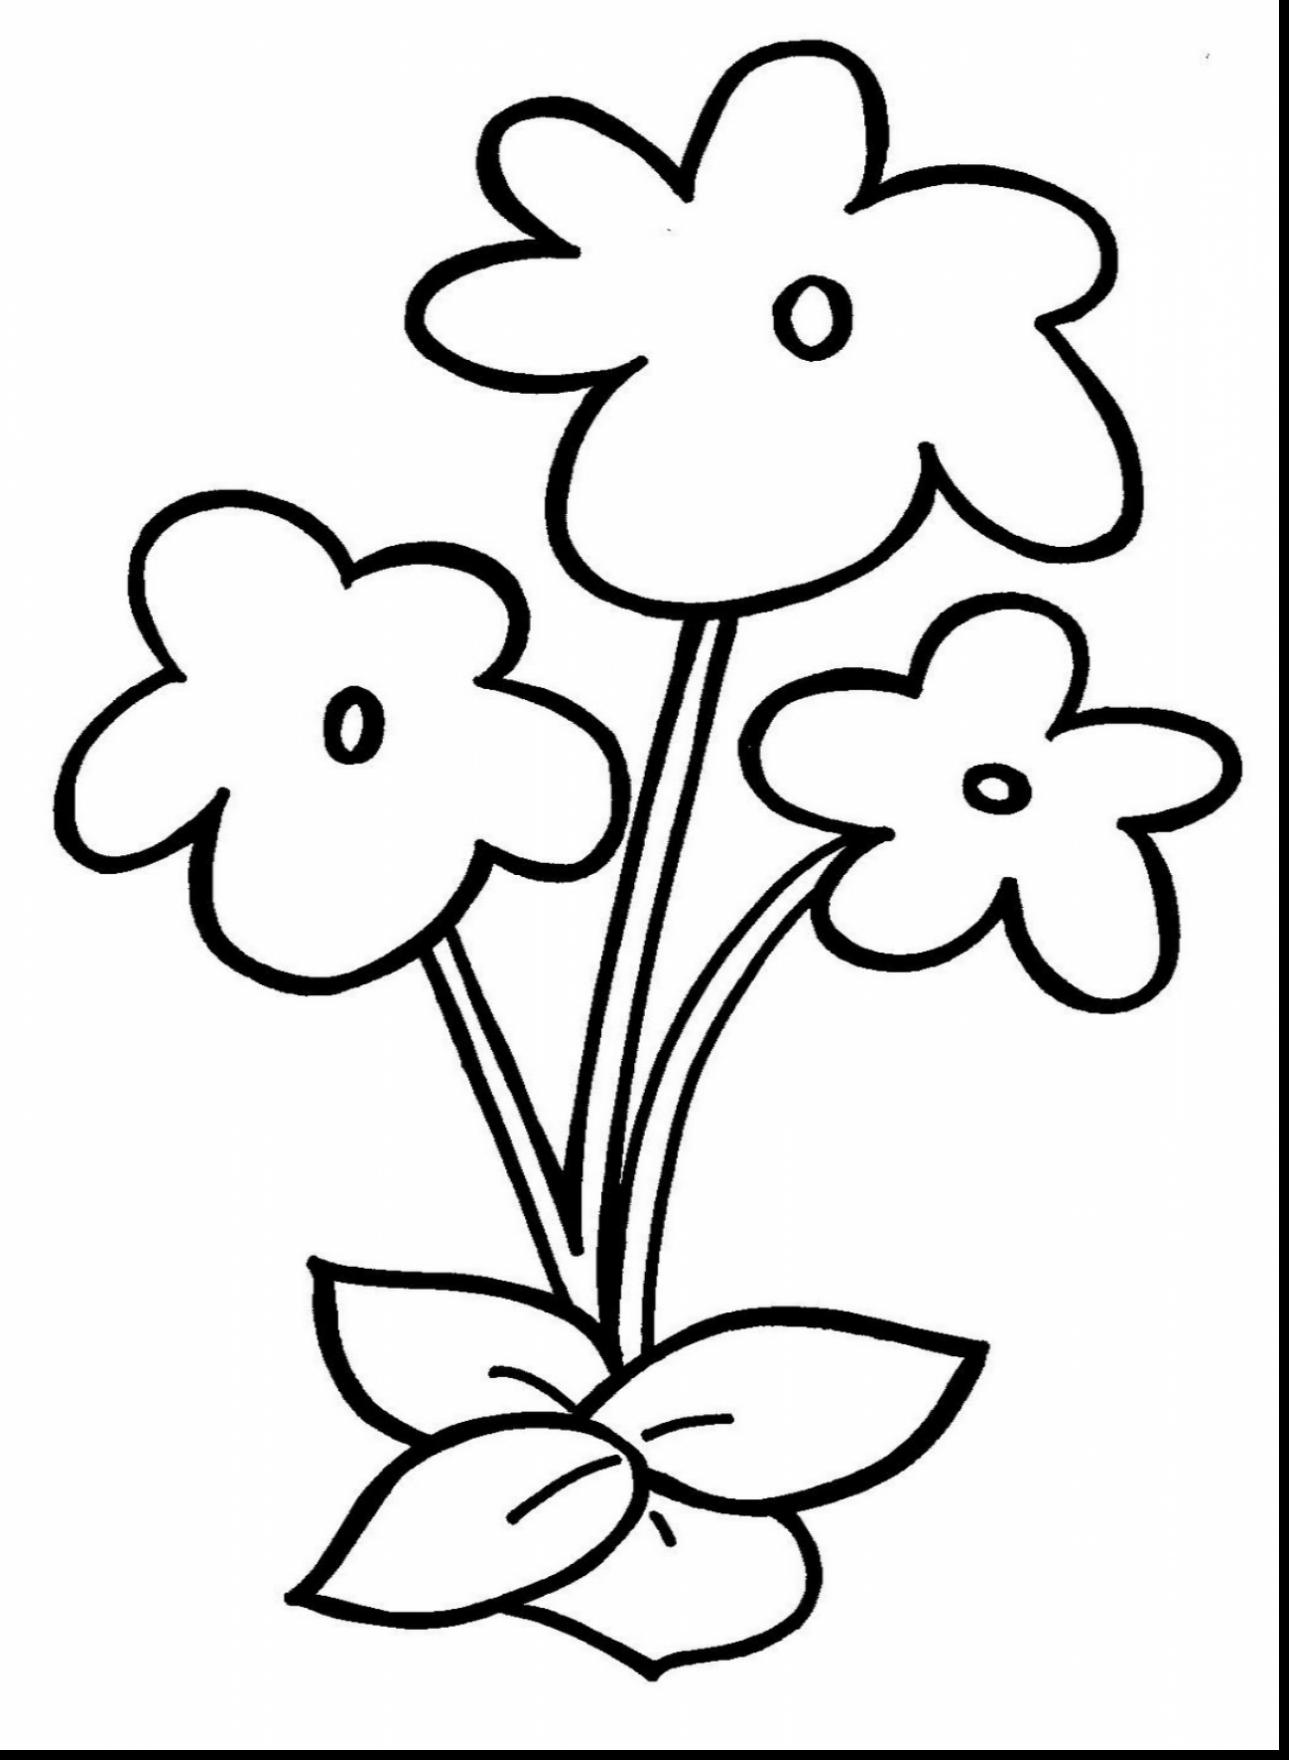 preschool coloring pages pdf 20 preschool coloring pages free word pdf jpeg png coloring preschool pdf pages